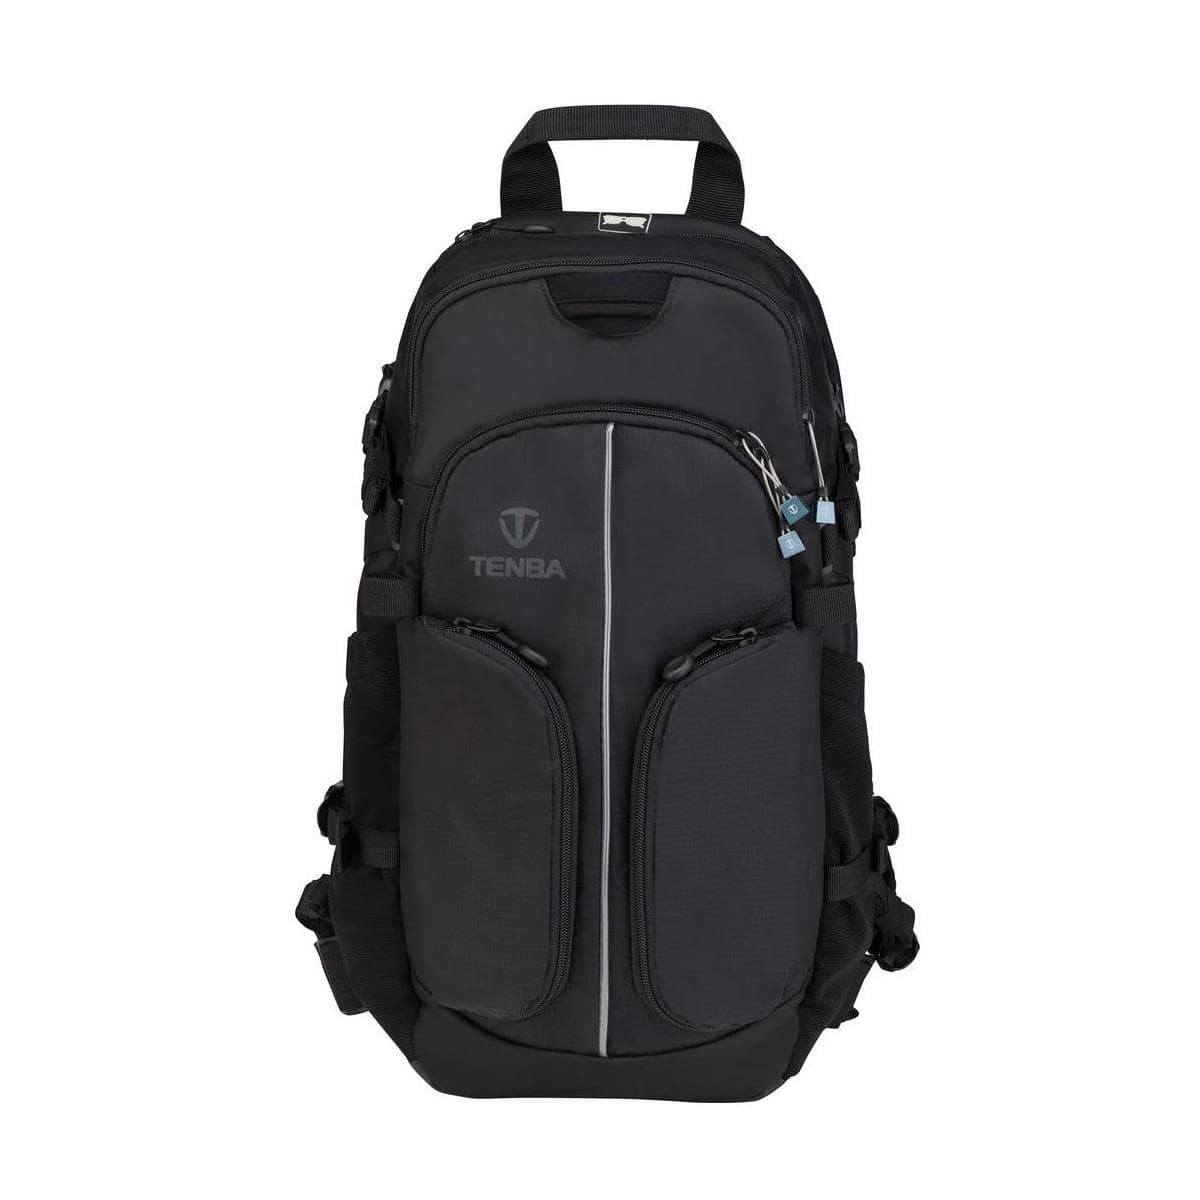 Tenba Shootout 14L ActionPack for GoPro (Black) $80 + free shipping